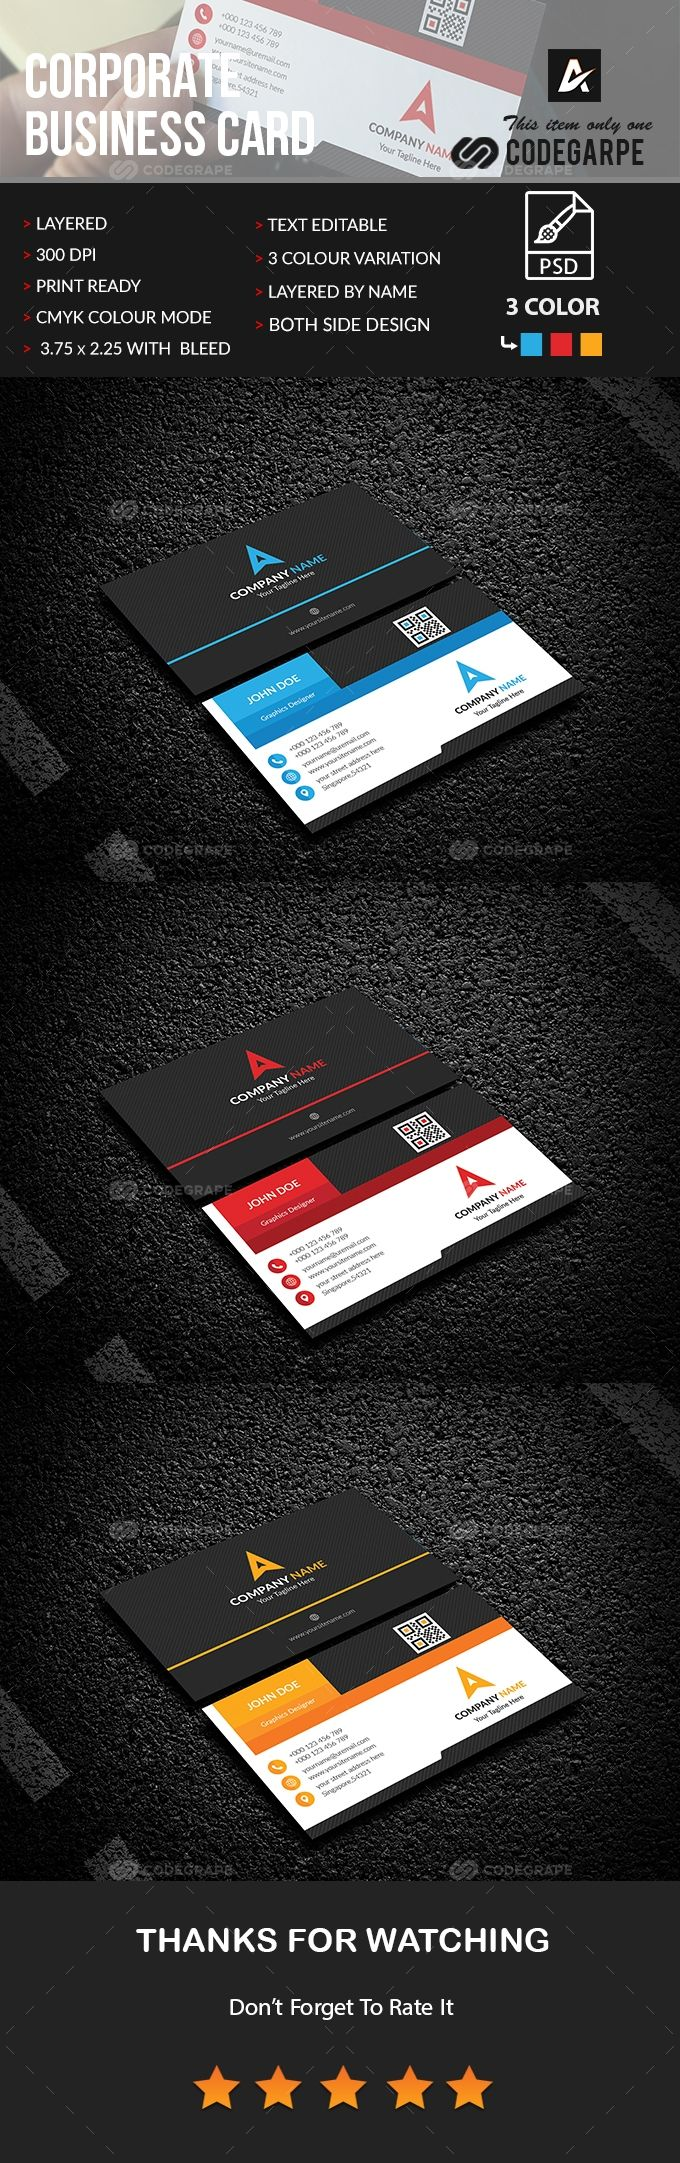 The 25+ best Realtor business cards ideas on Pinterest   Real ...